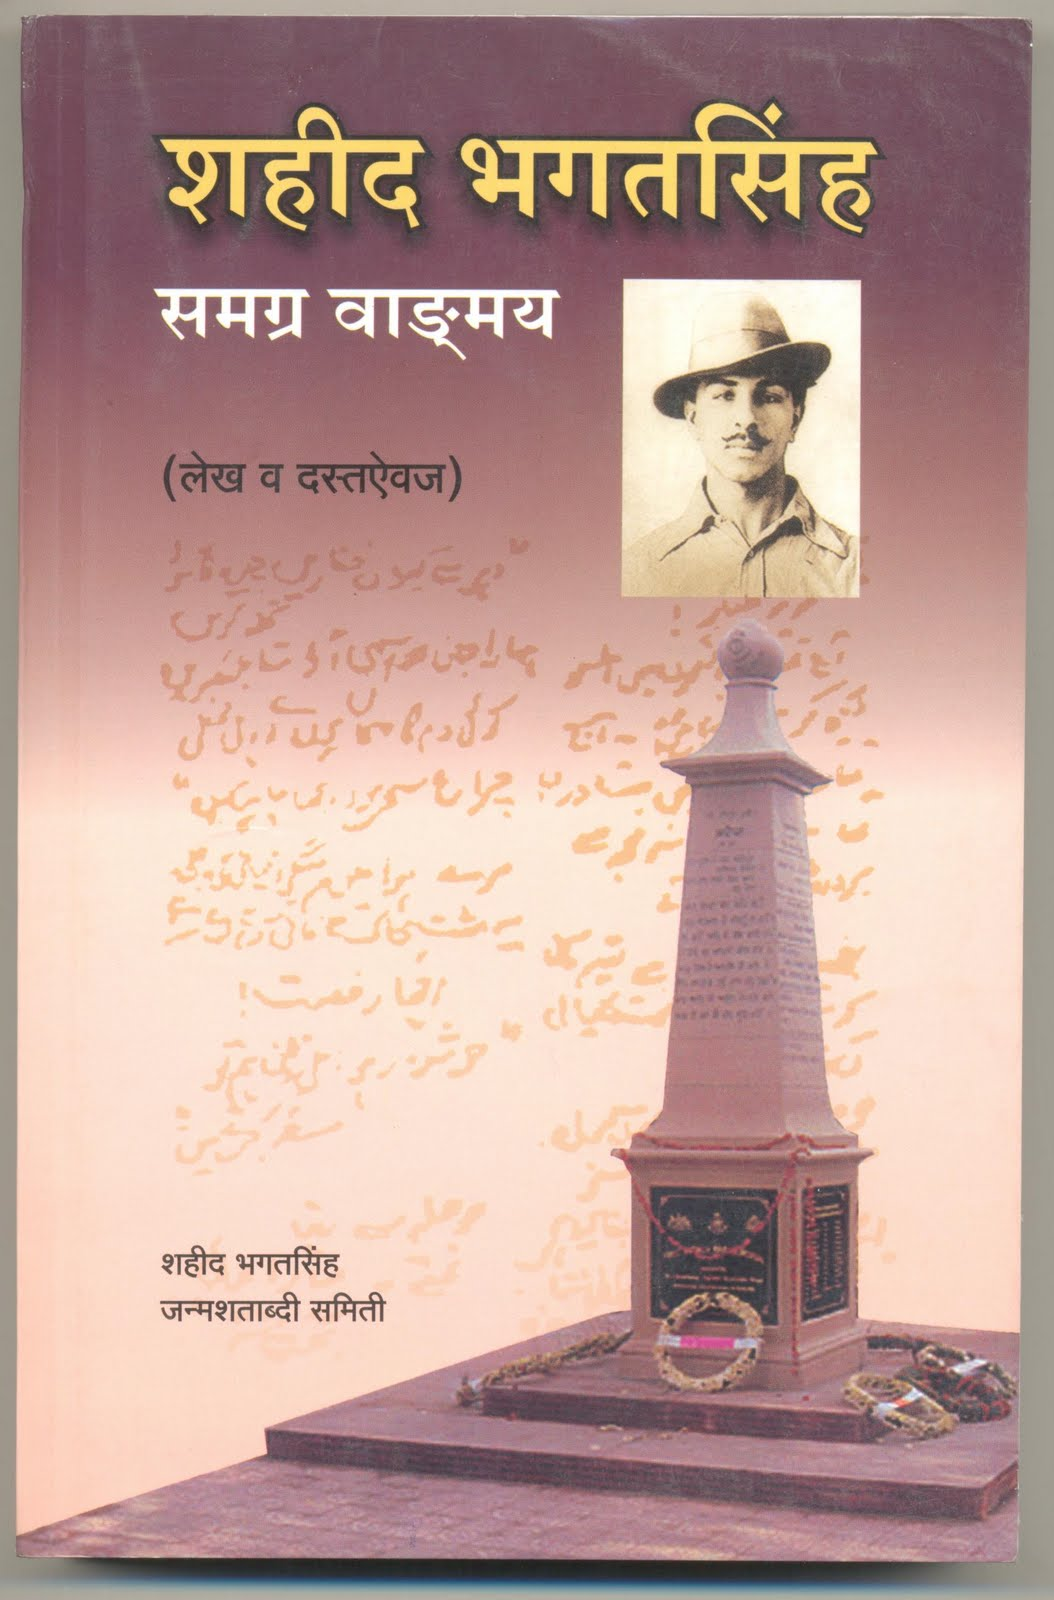 essay on bhagat singh bhagat singh short speech essay article d  bhagat singh study chaman lal marathi collection of bhagat singh marathi collection of bhagat singh documents paragraph on bhagat singh